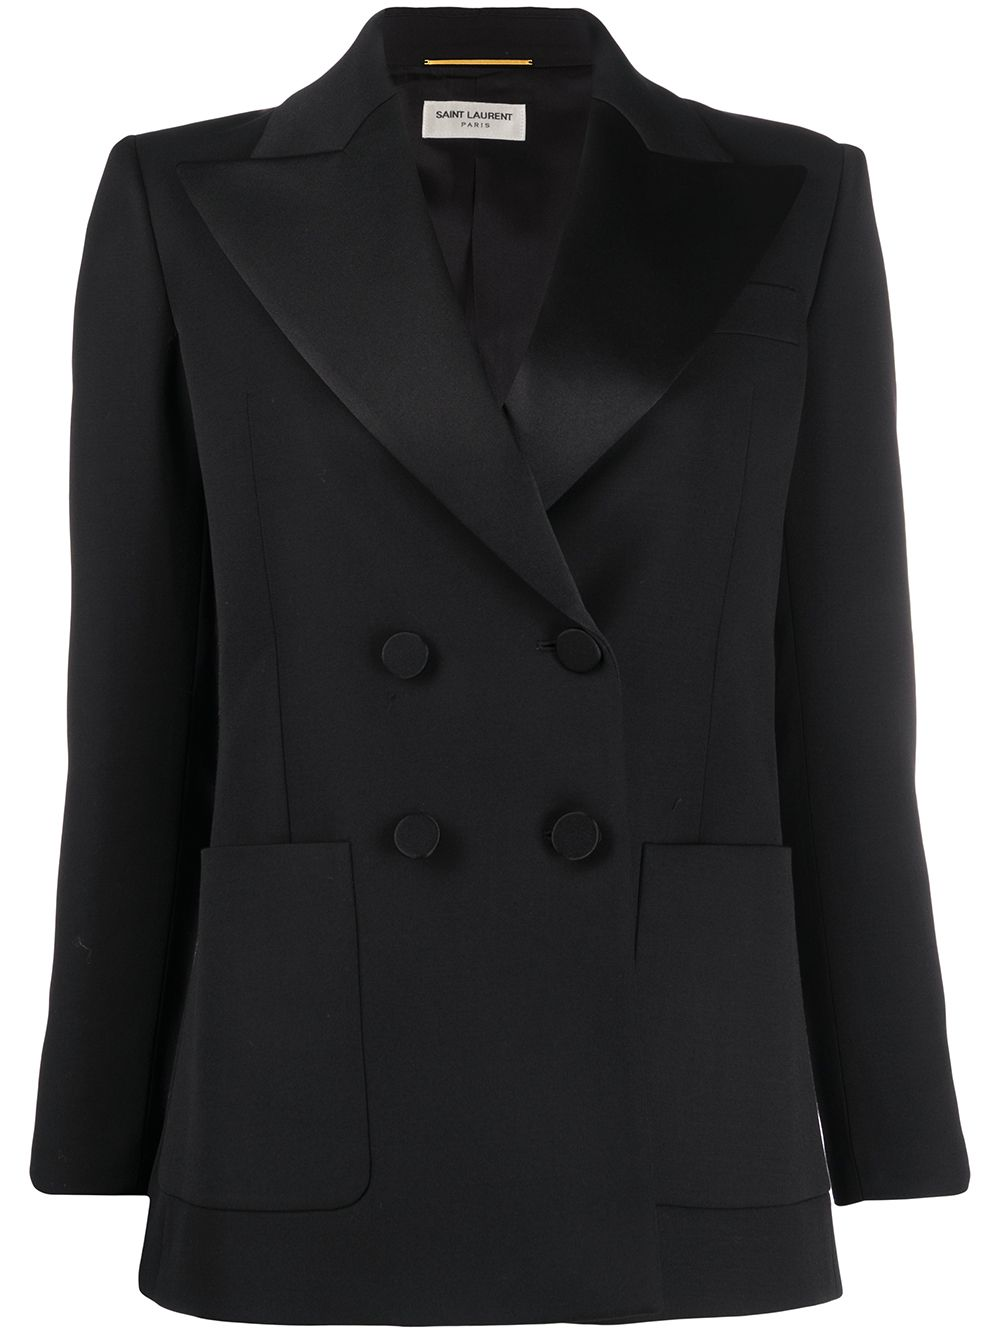 Saint Laurent Doppelreihiger Smoking-Blazer - Schwarz